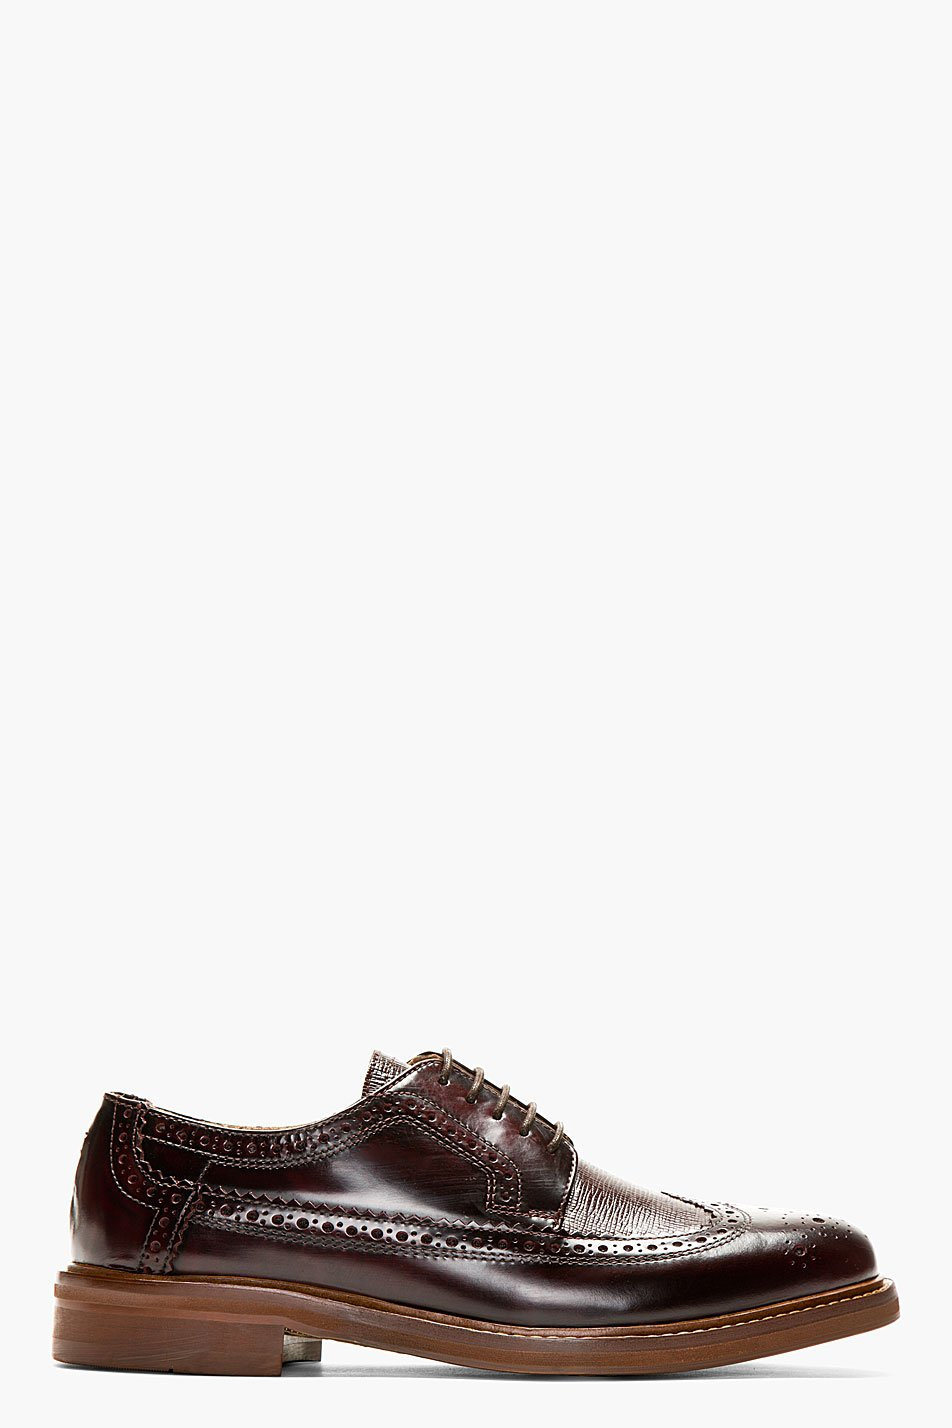 H by hudson burgundy leather callaghan longwing brogues